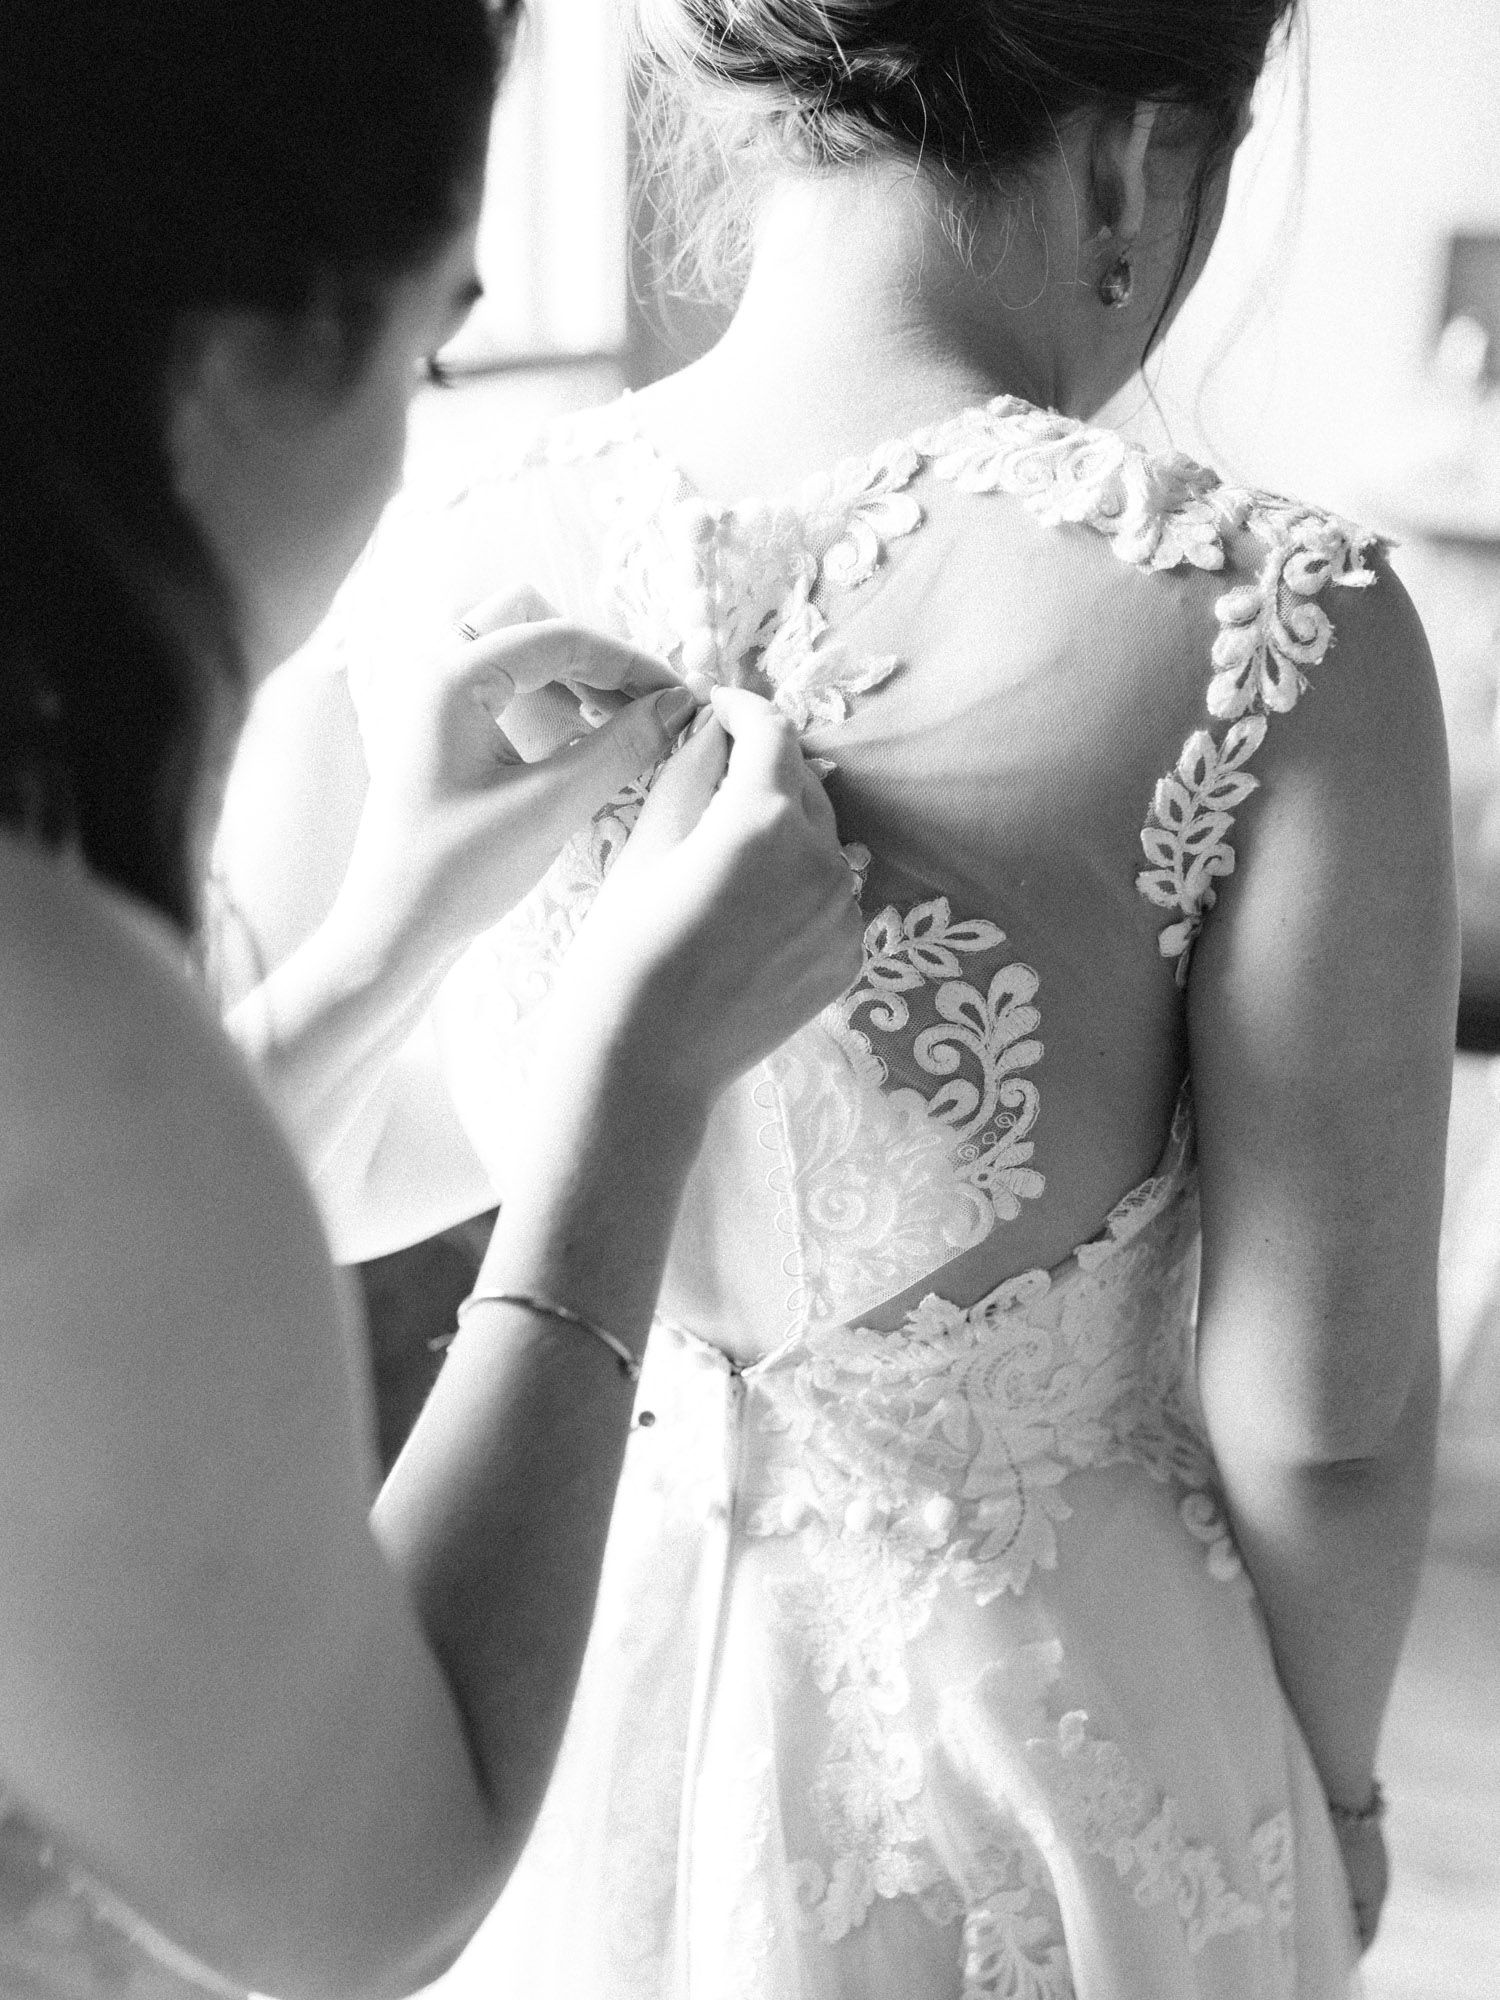 The maid of honor fastens the buttons on the back of the bride's lace wedding gown